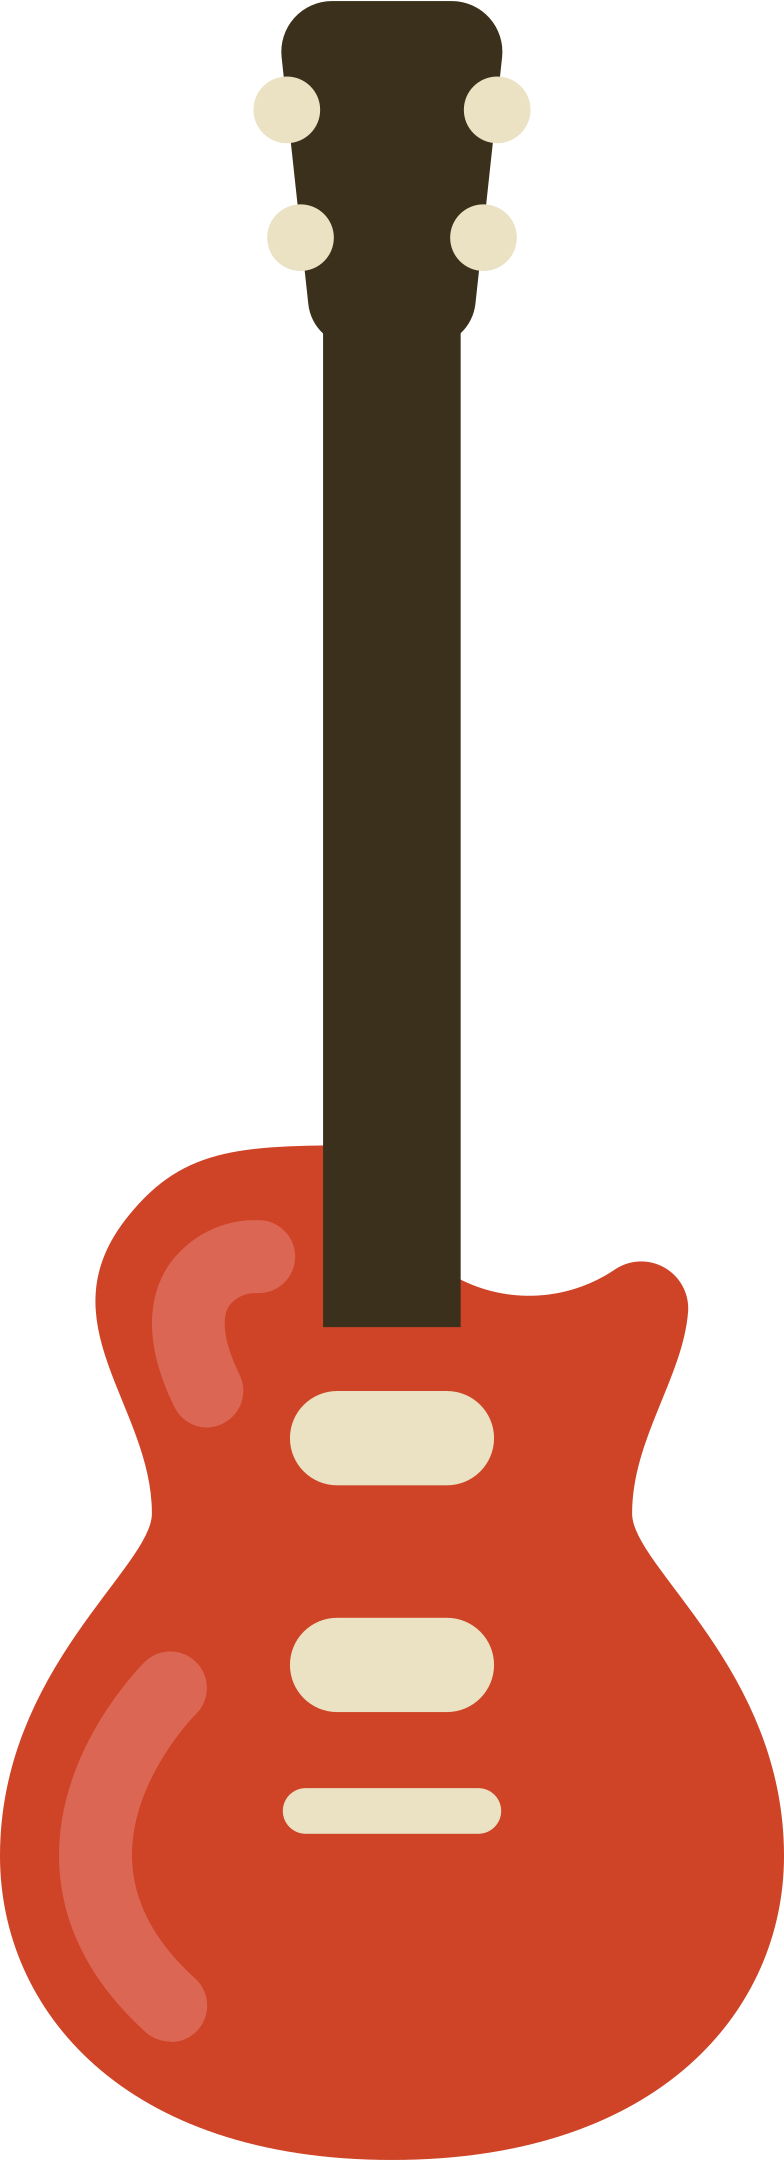 guitar electric Clipart illustration in PNG, SVG